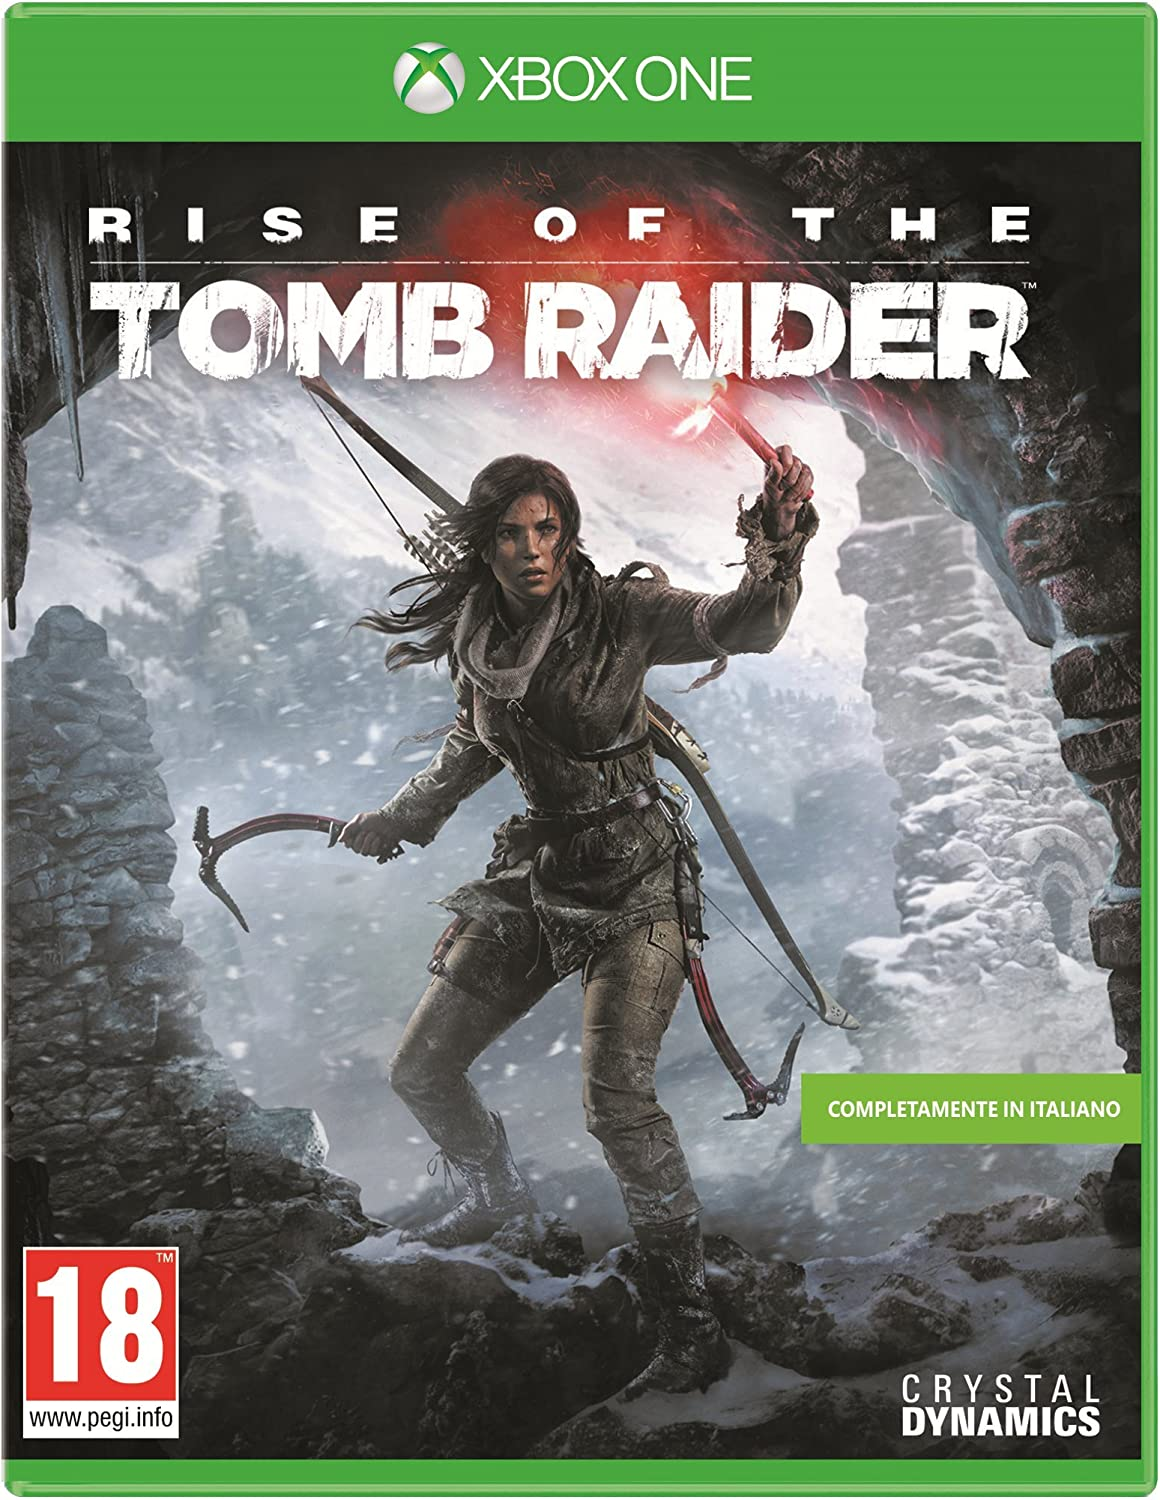 Tomb Raider: Rise of the